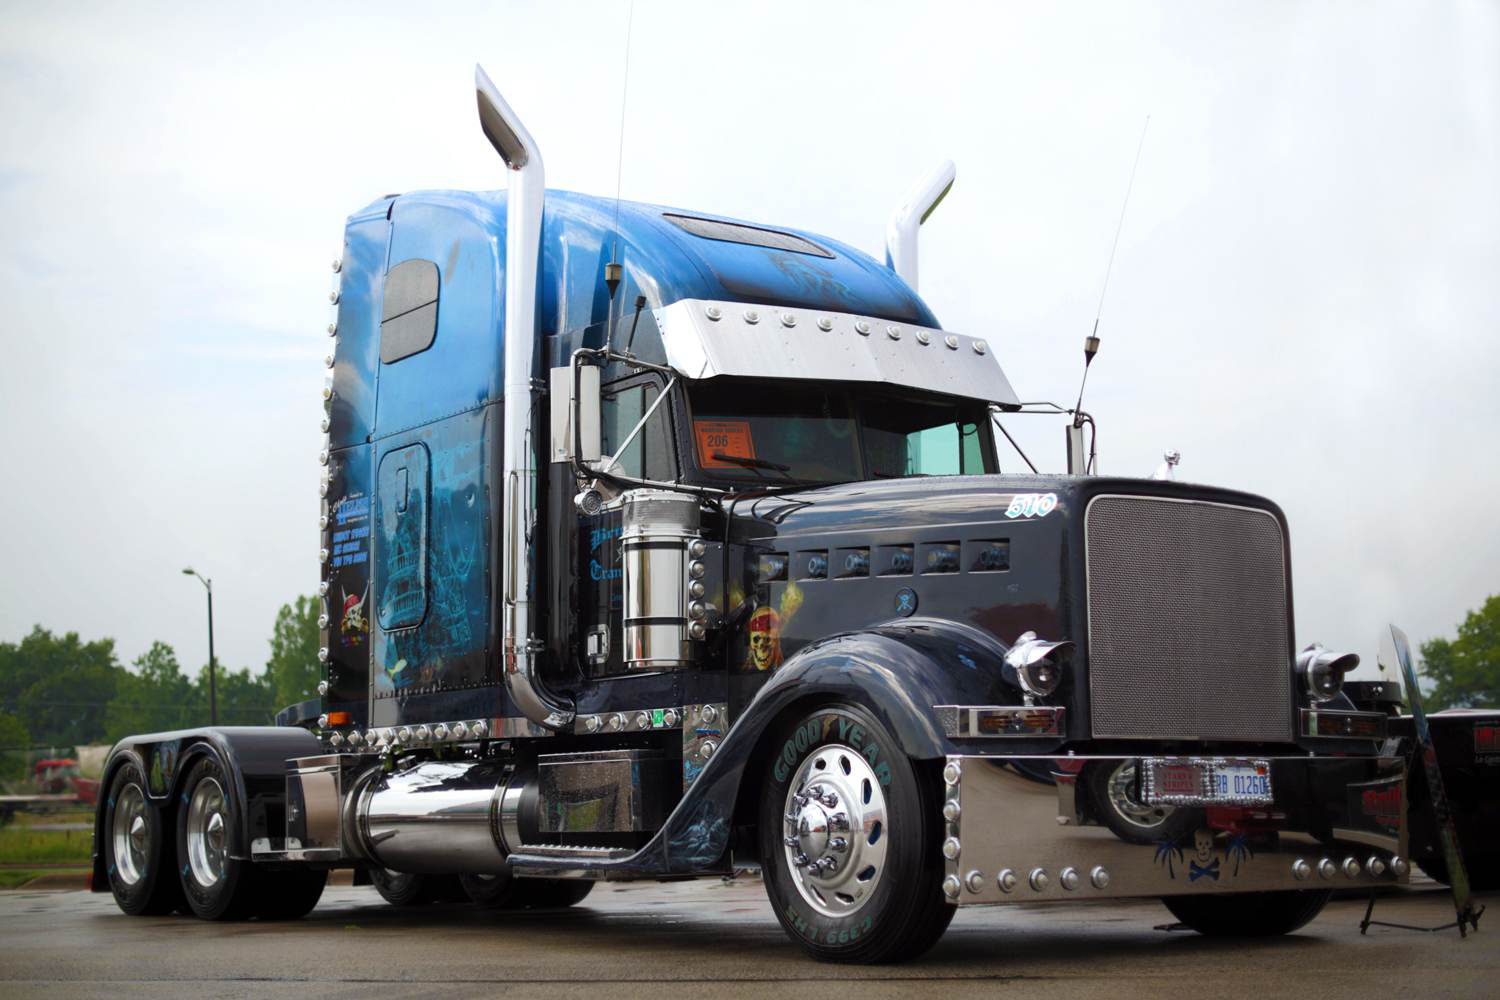 Bob and Shelley Brinker's 2000 Freightliner Classic won its second Best of Show of the year at River States, winning the show's Working Bobtail category.